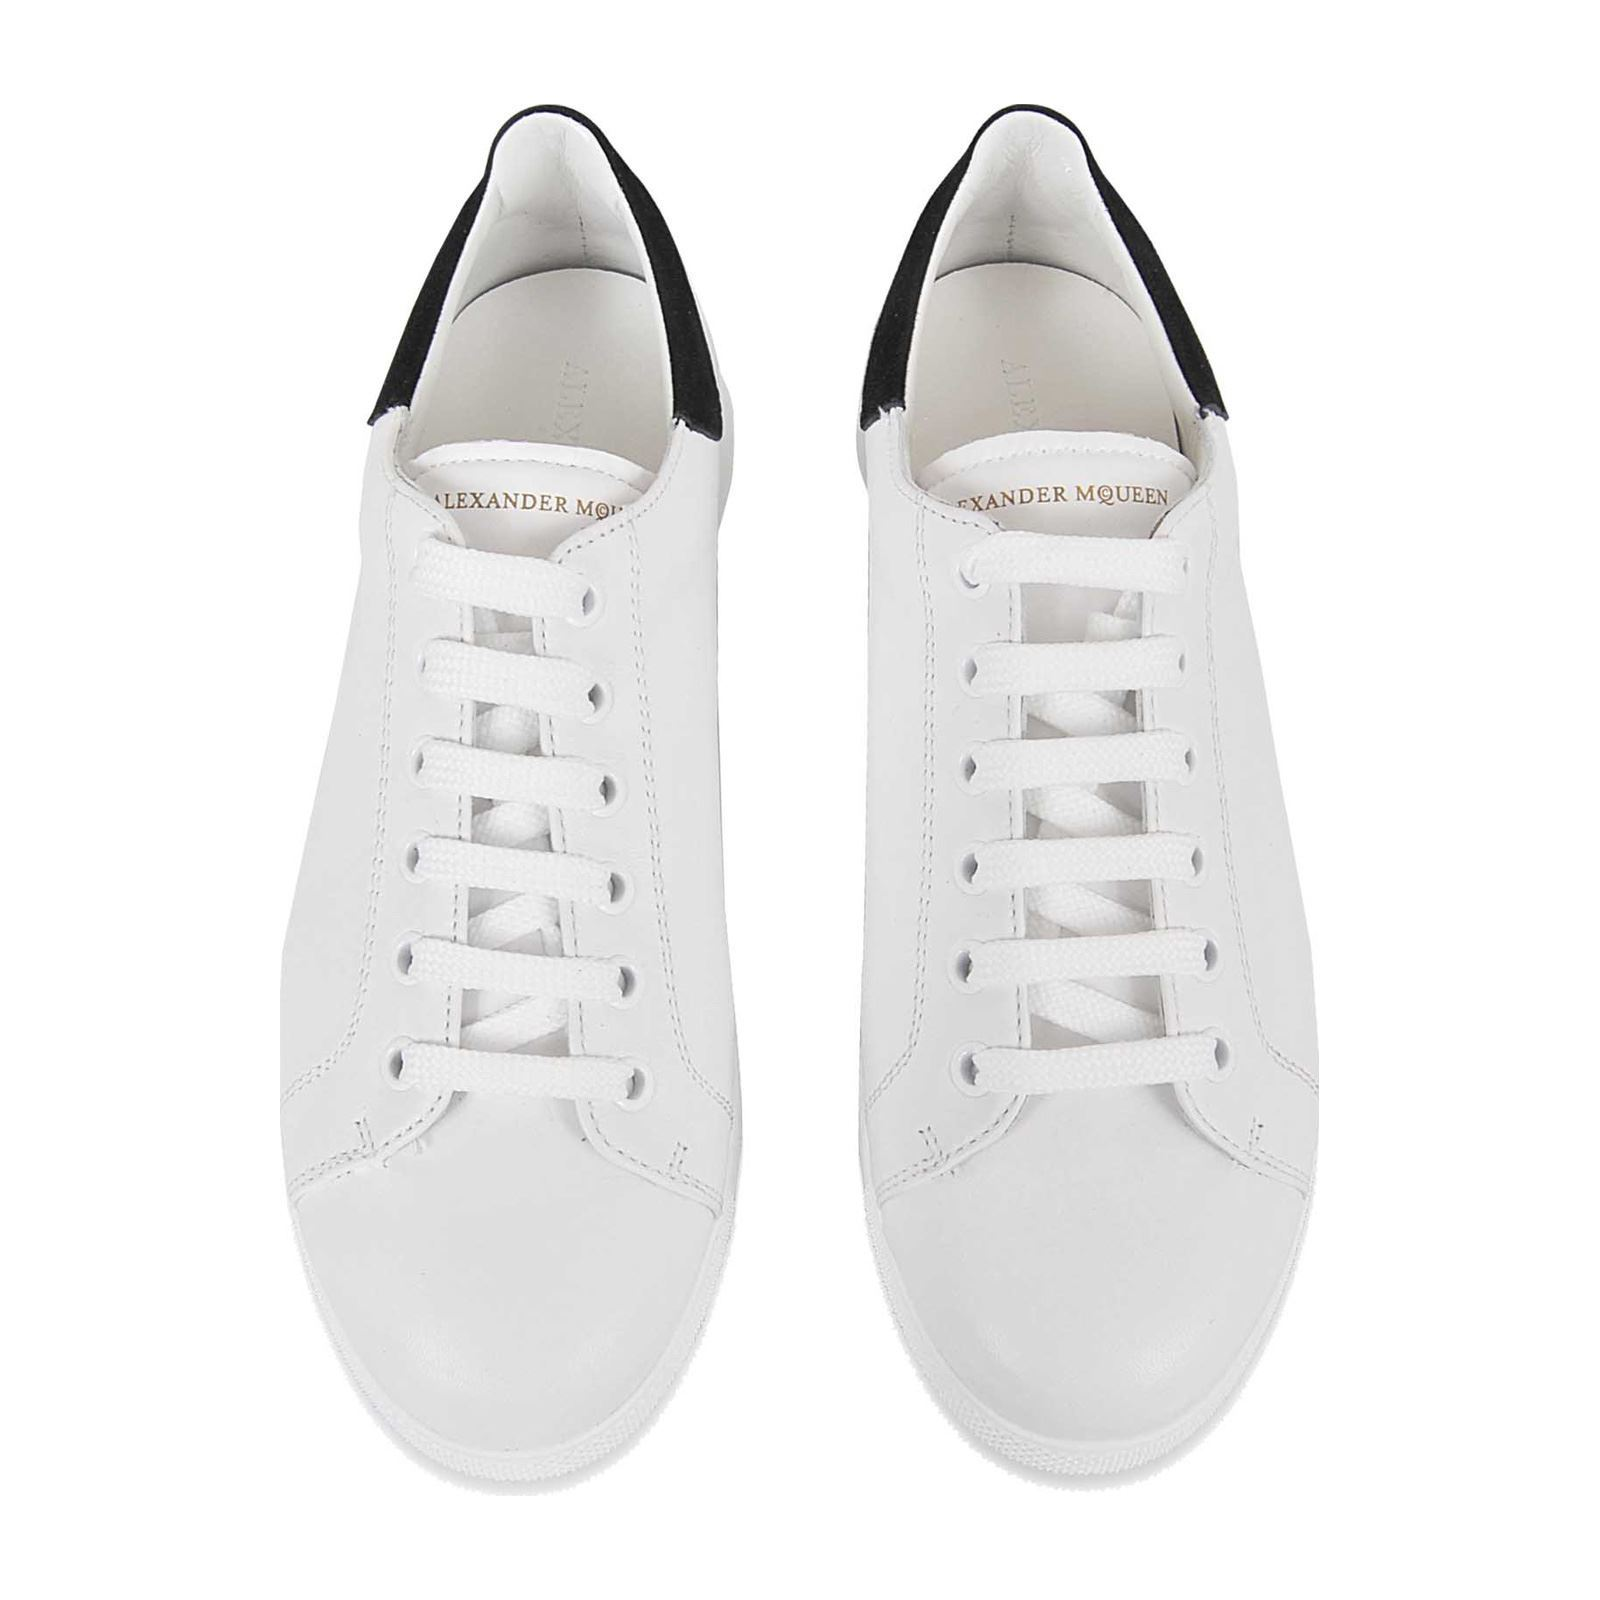 be5d332332cd Alexander McQueen Baskets - blanc   BrandAlley